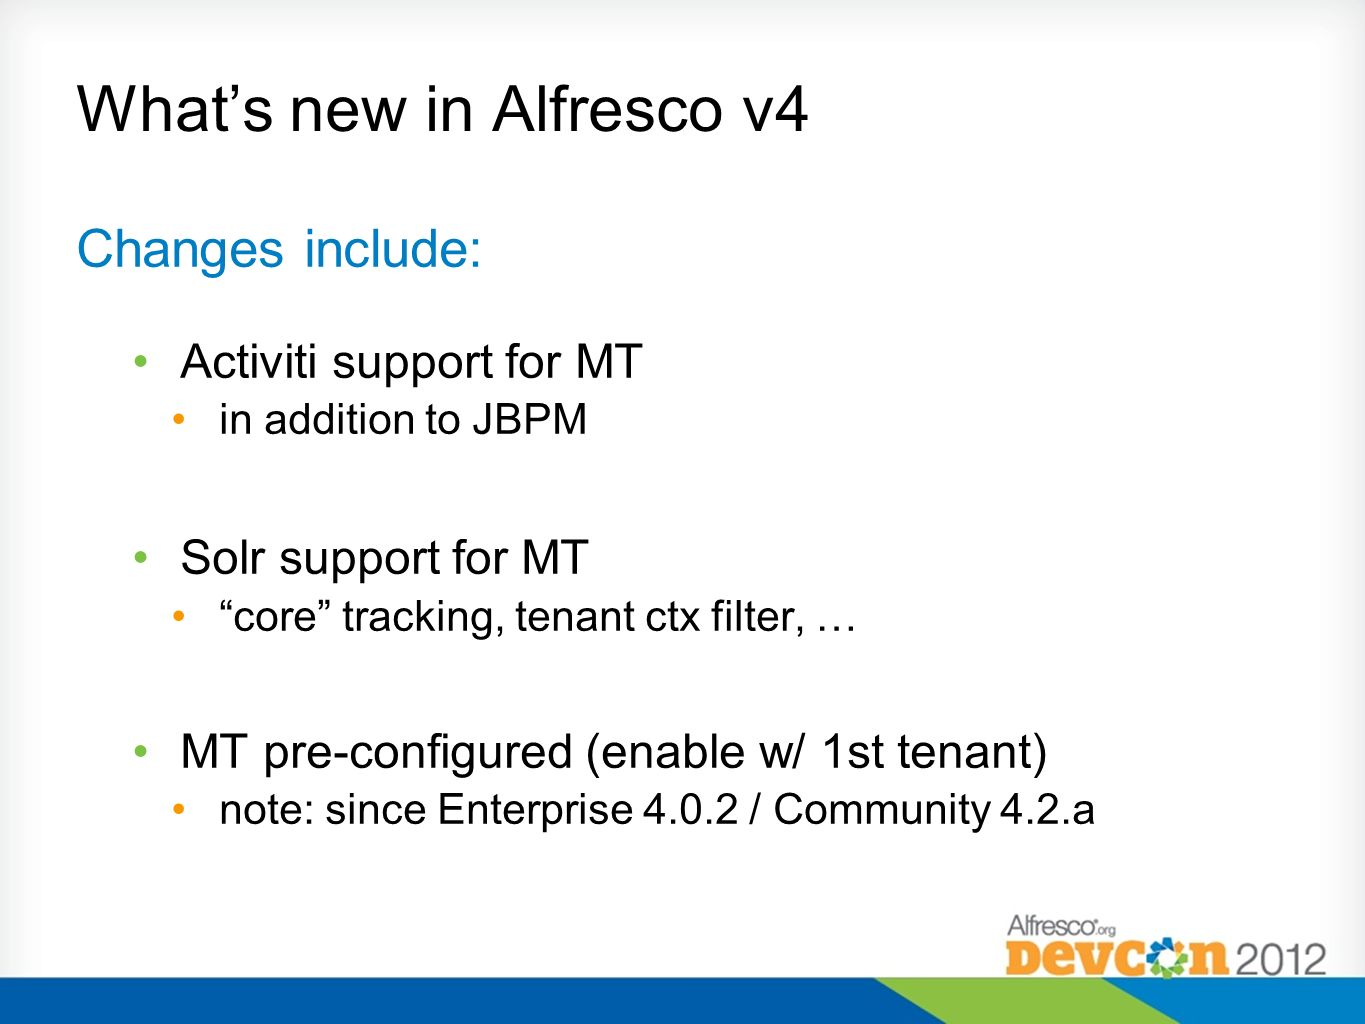 What's new in Alfresco v4